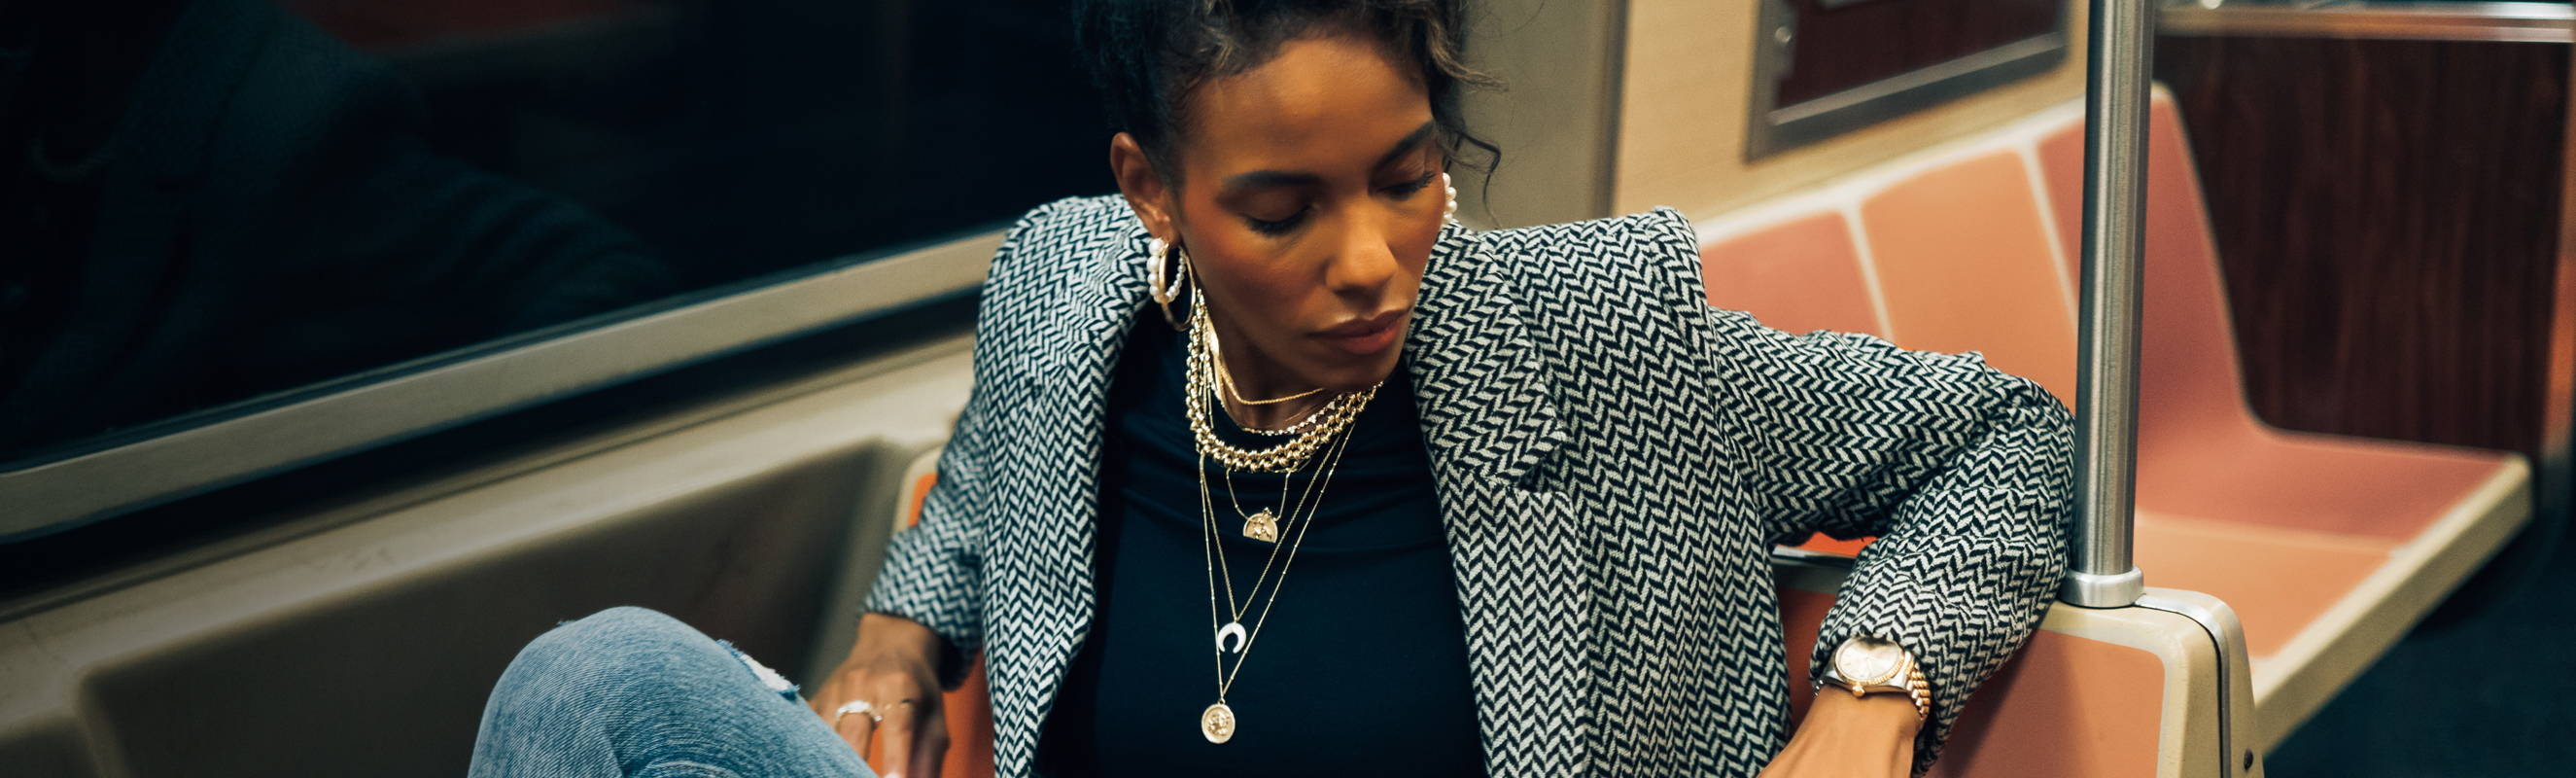 Model riding the subway wearing various Ring Concierge necklaces layered